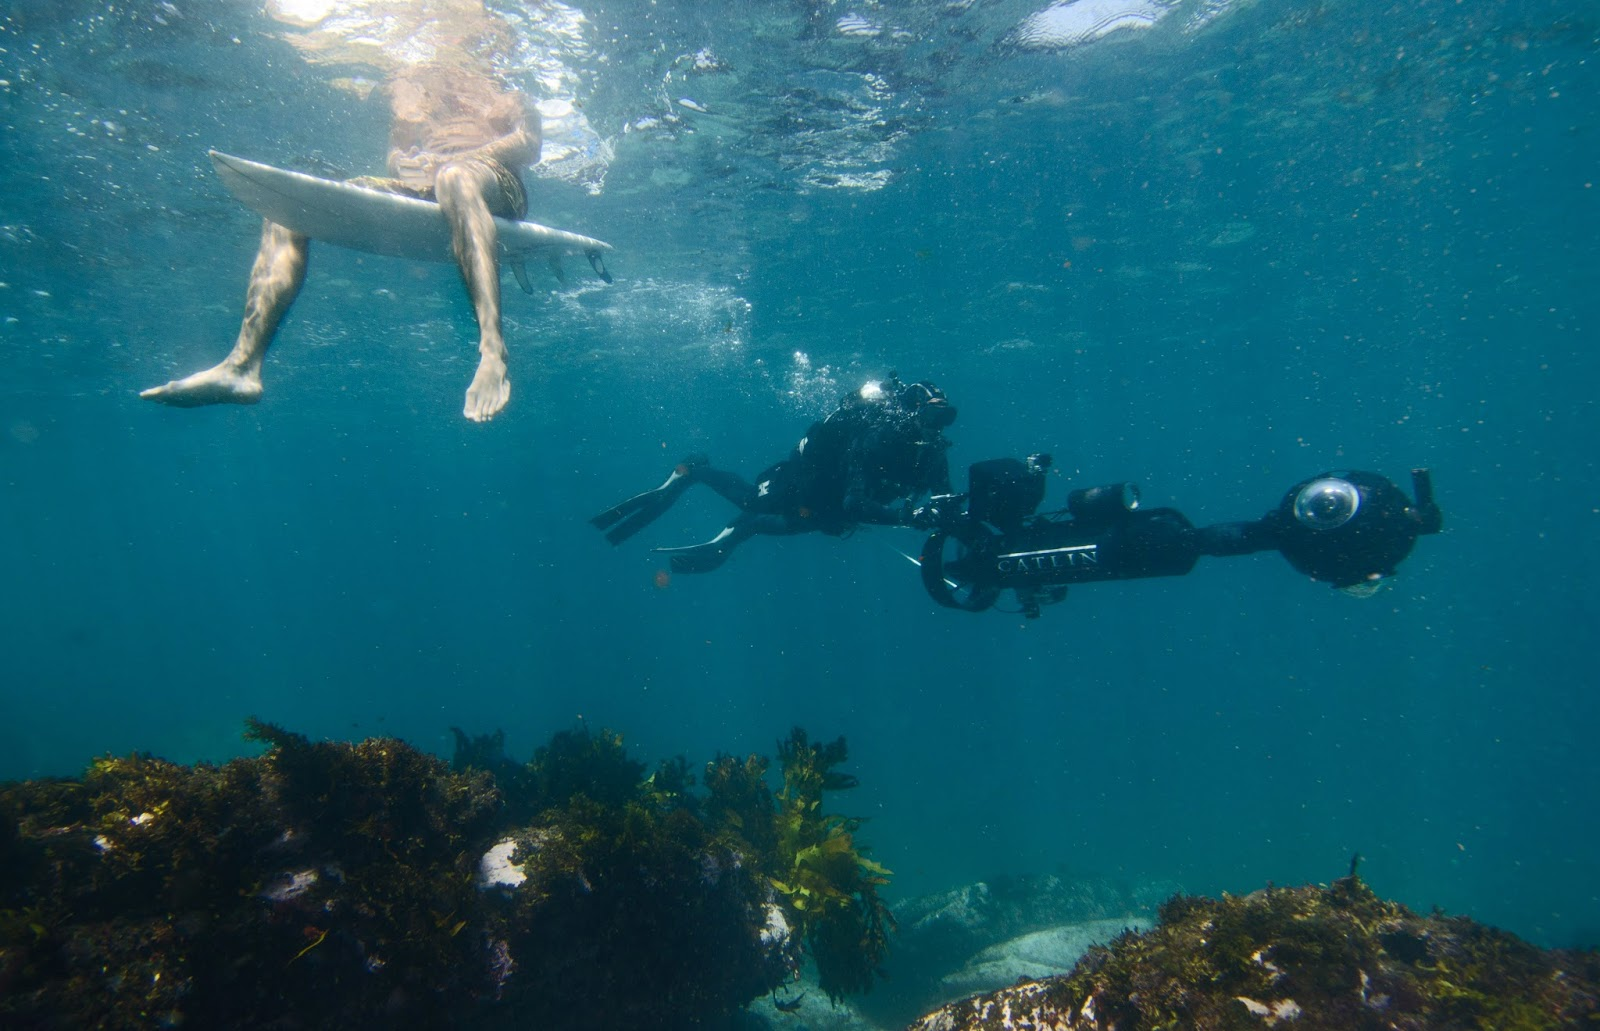 Sydneys underwater world is coming to street view on google maps the project uses catlin seaview surveys 360 degree panoramic svii camera to gather the imagery which will be published to google maps later this year gumiabroncs